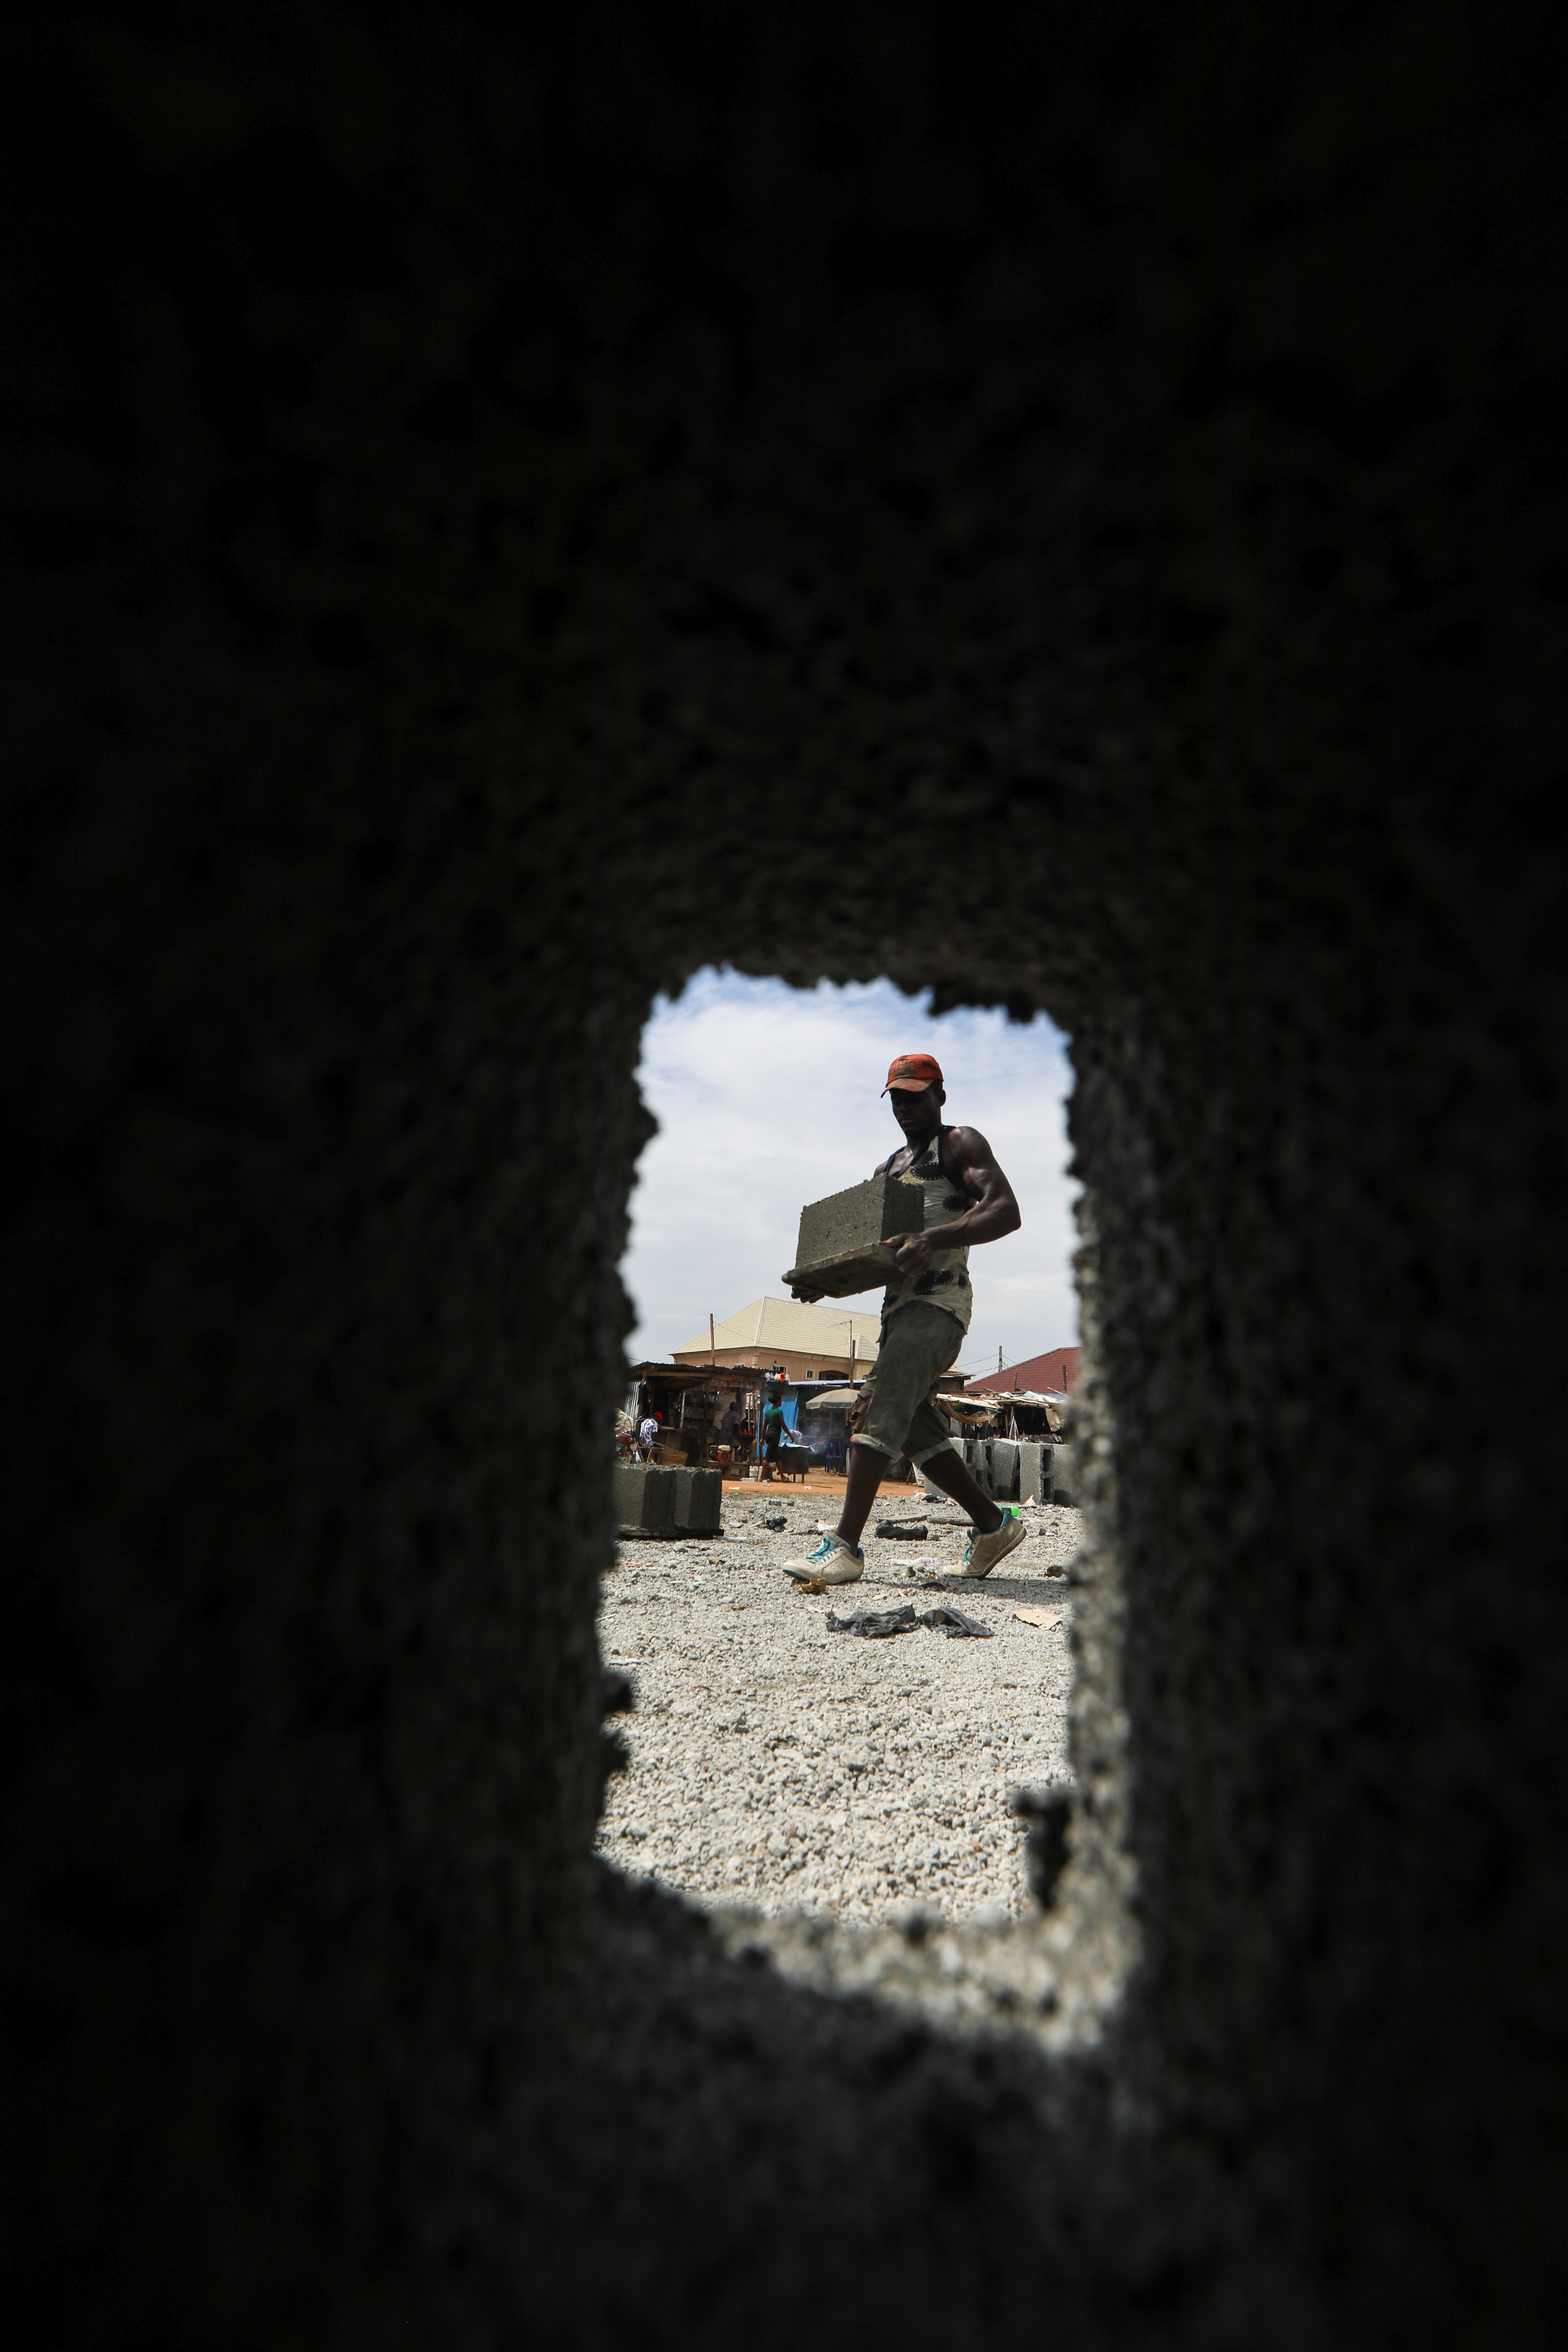 A man carries a moulded block at a block making centre in Abuja, Nigeria May 10, 2021. Picture taken May 10, 2021. REUTERS/Afolabi Sotunde